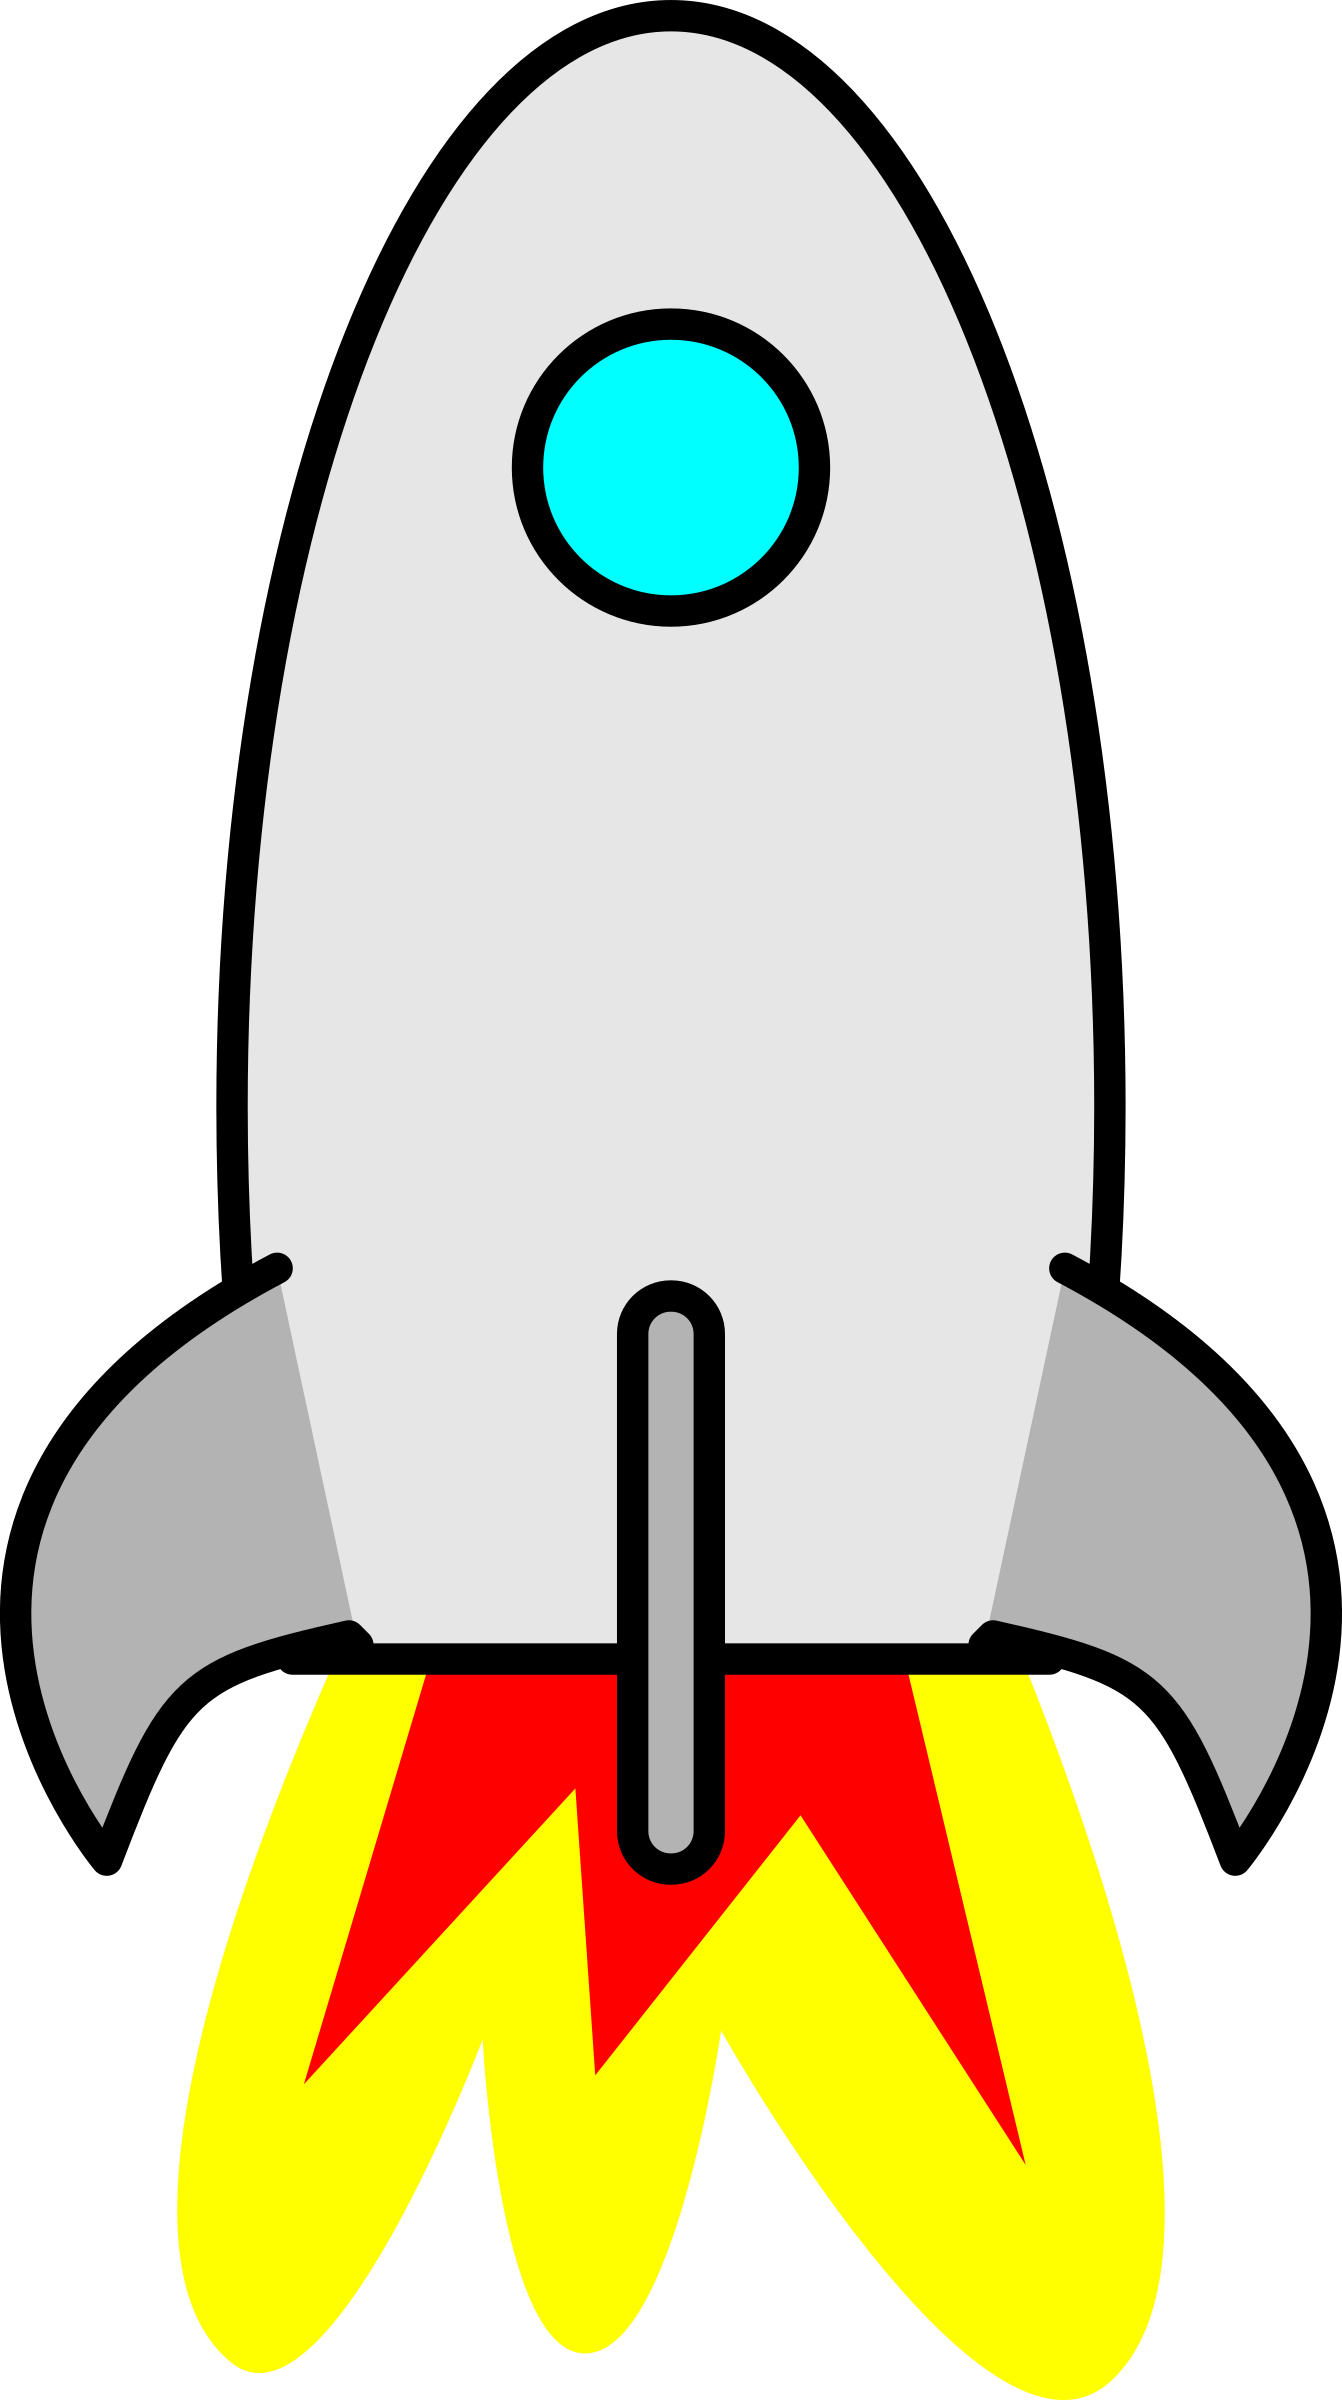 spaceship svg clear background